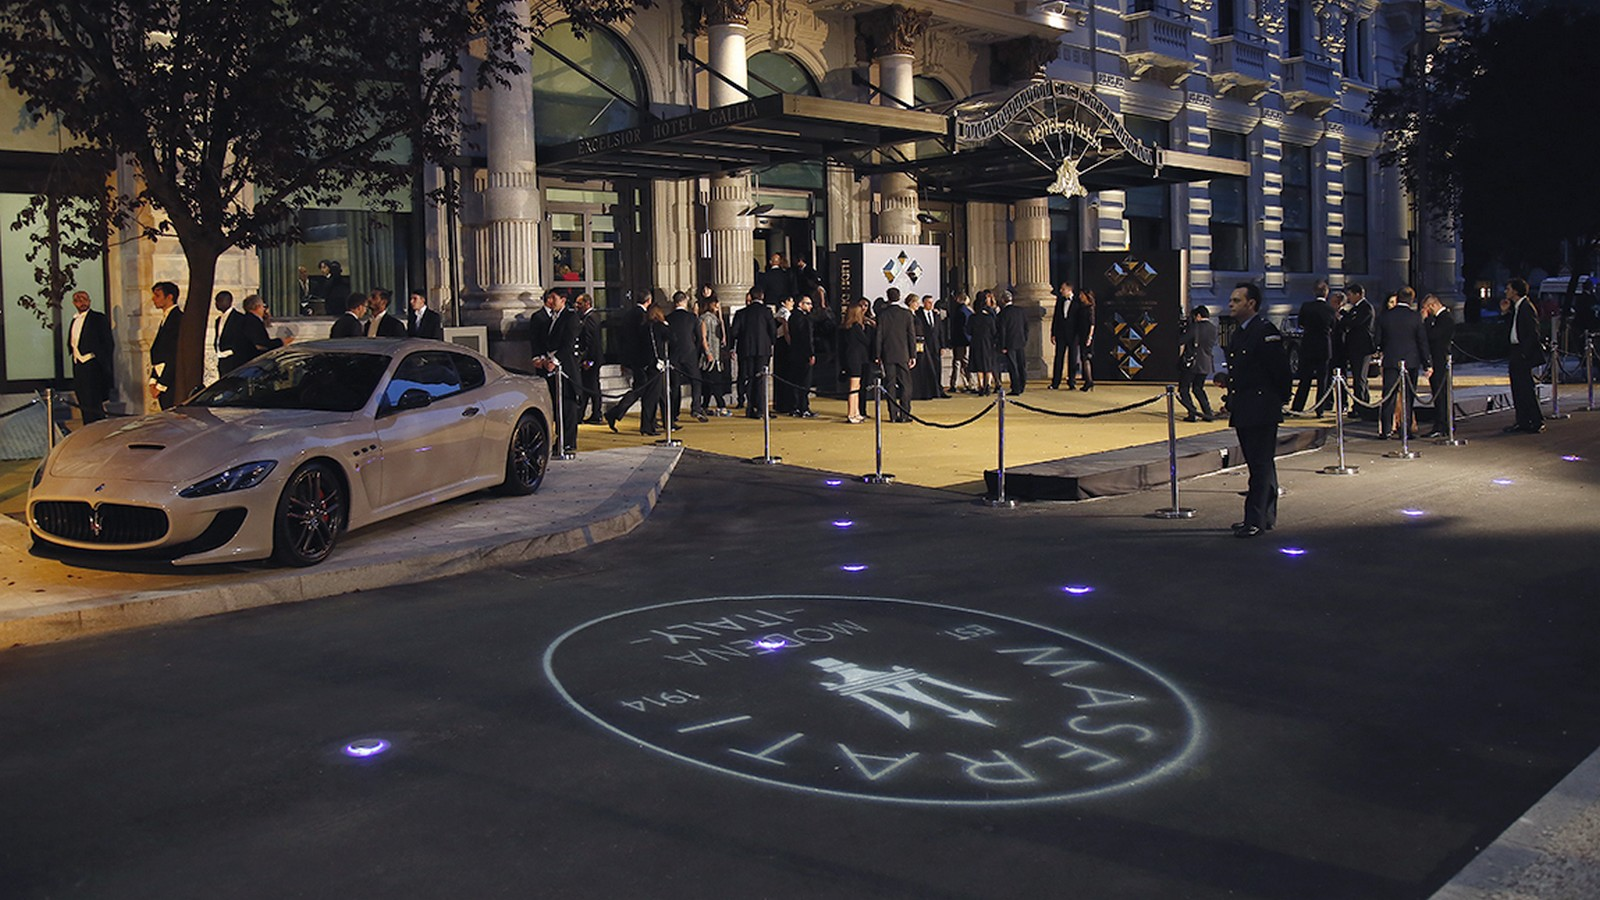 Maserati at the hotel opening event